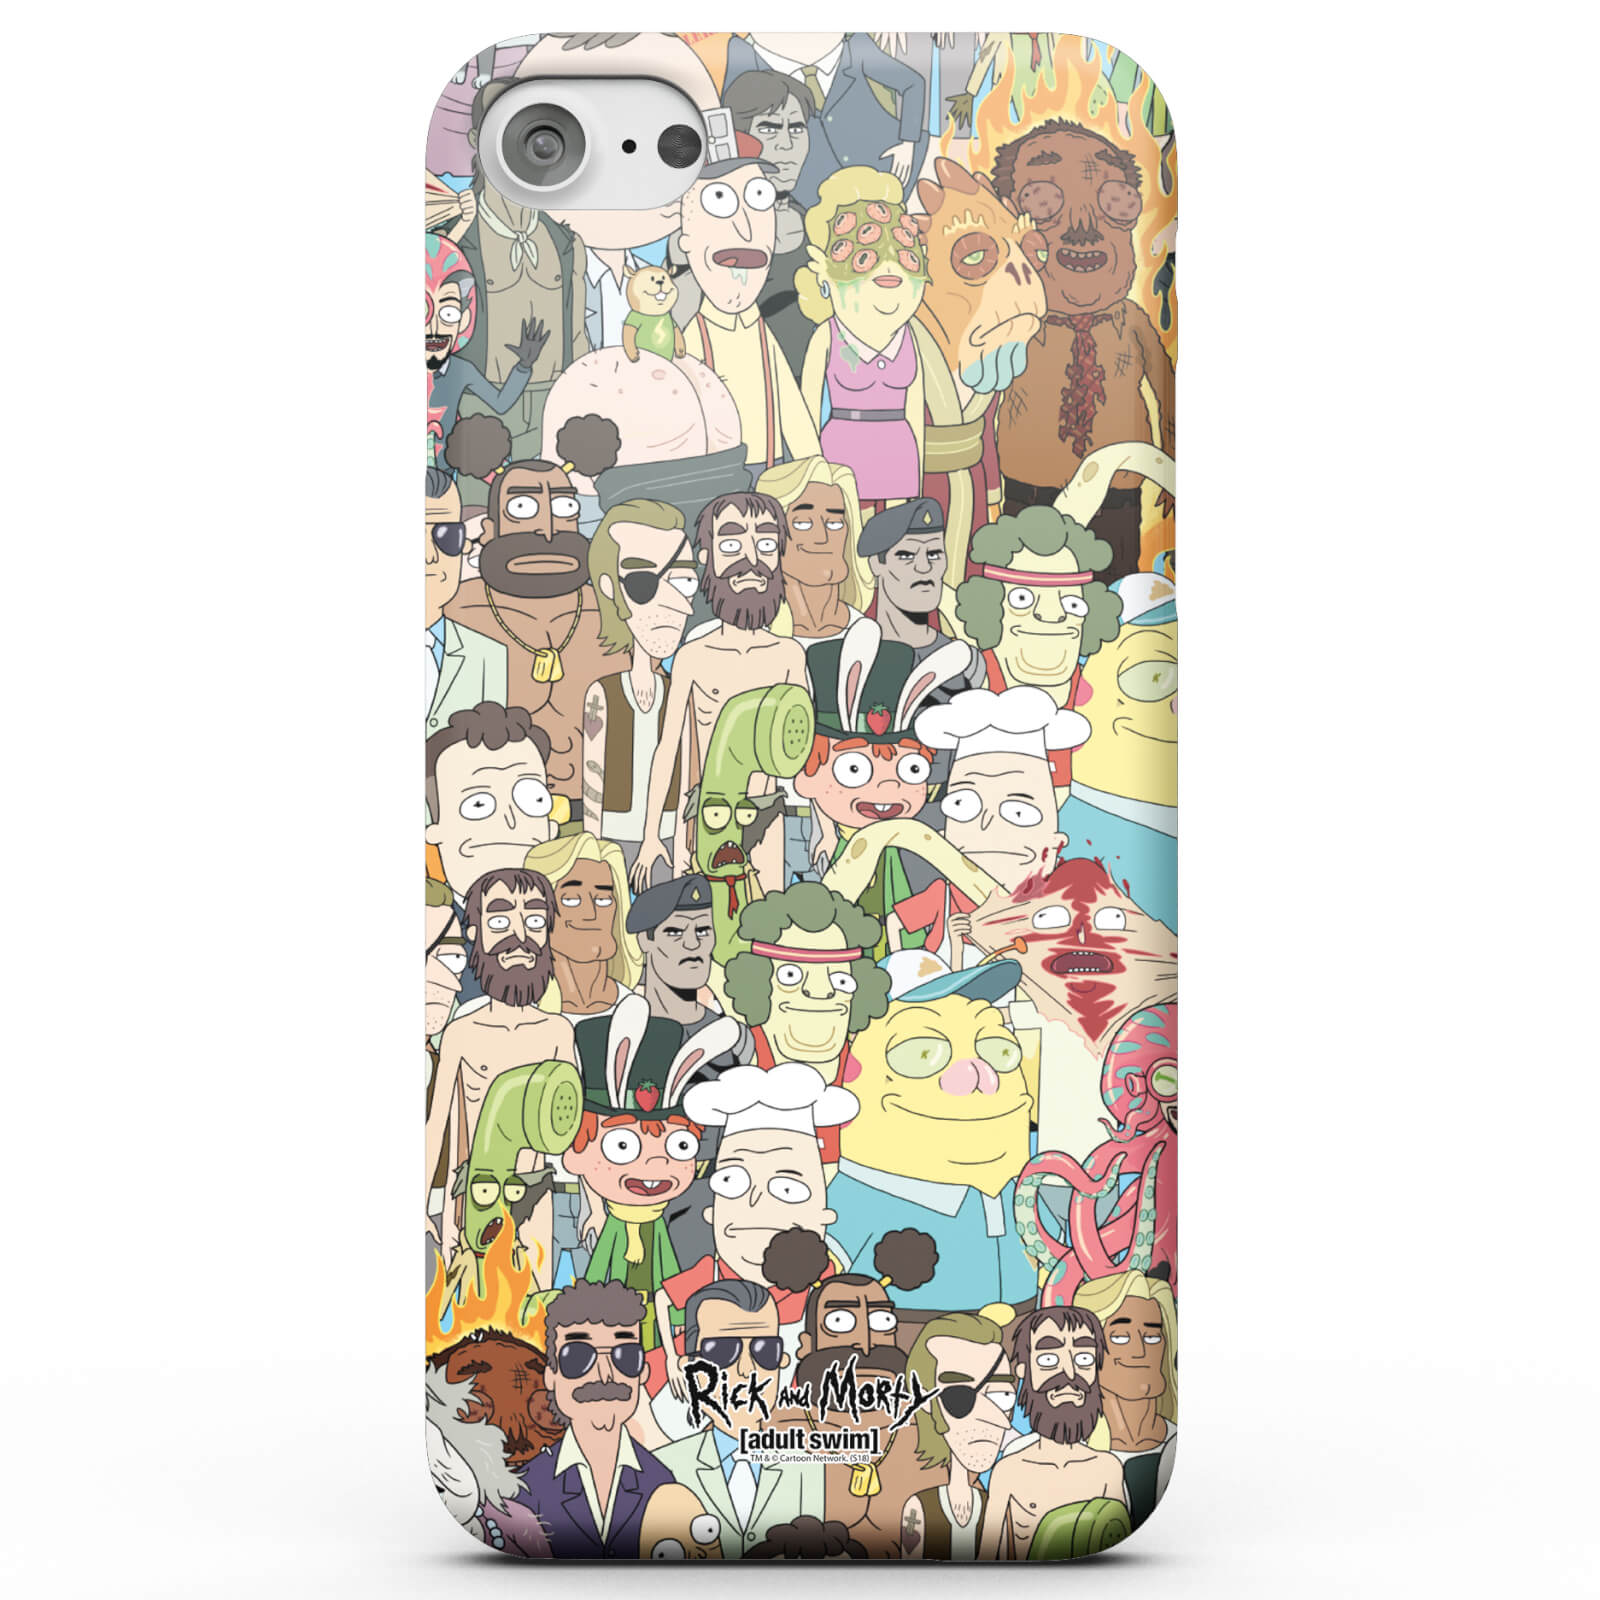 Funda Móvil Rick y Morty Interdimentional TV Characters para iPhone y Android - iPhone 8 Plus - Carcasa rígida - Mate de Rick and Morty